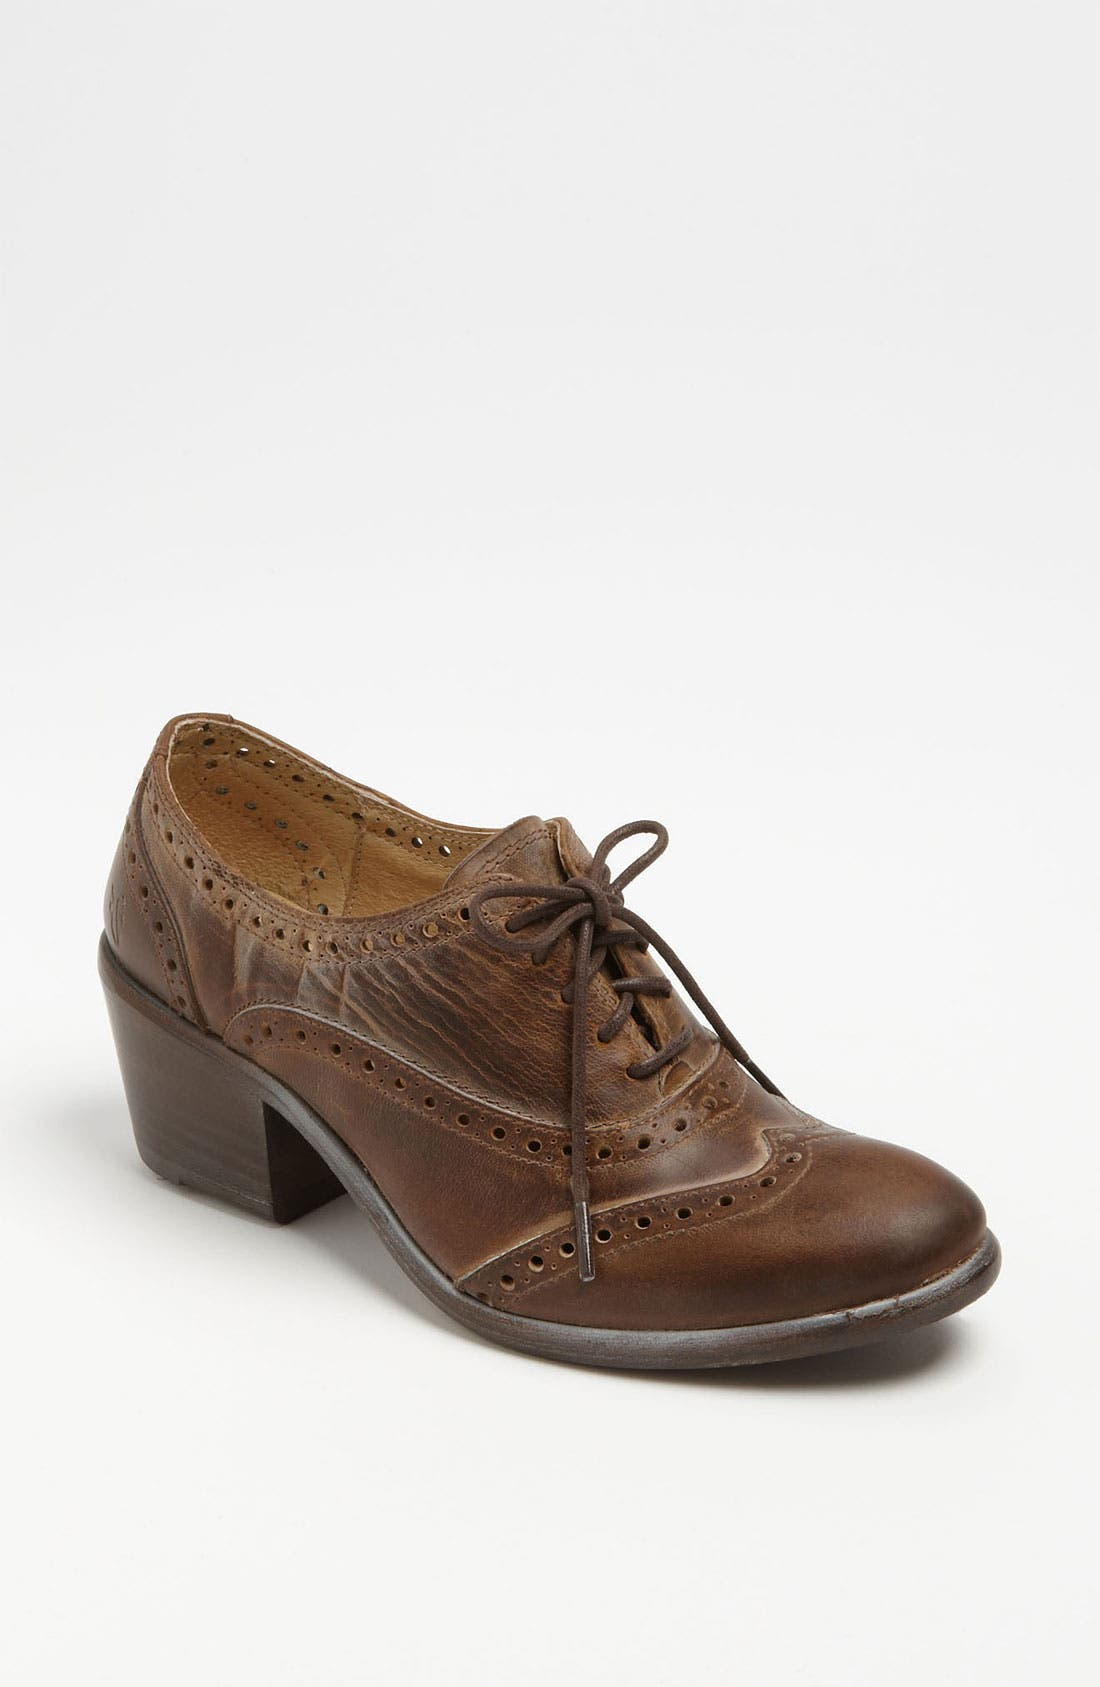 Alternate Image 1 Selected - Frye 'Maggie' Perforated Wingtip Oxford